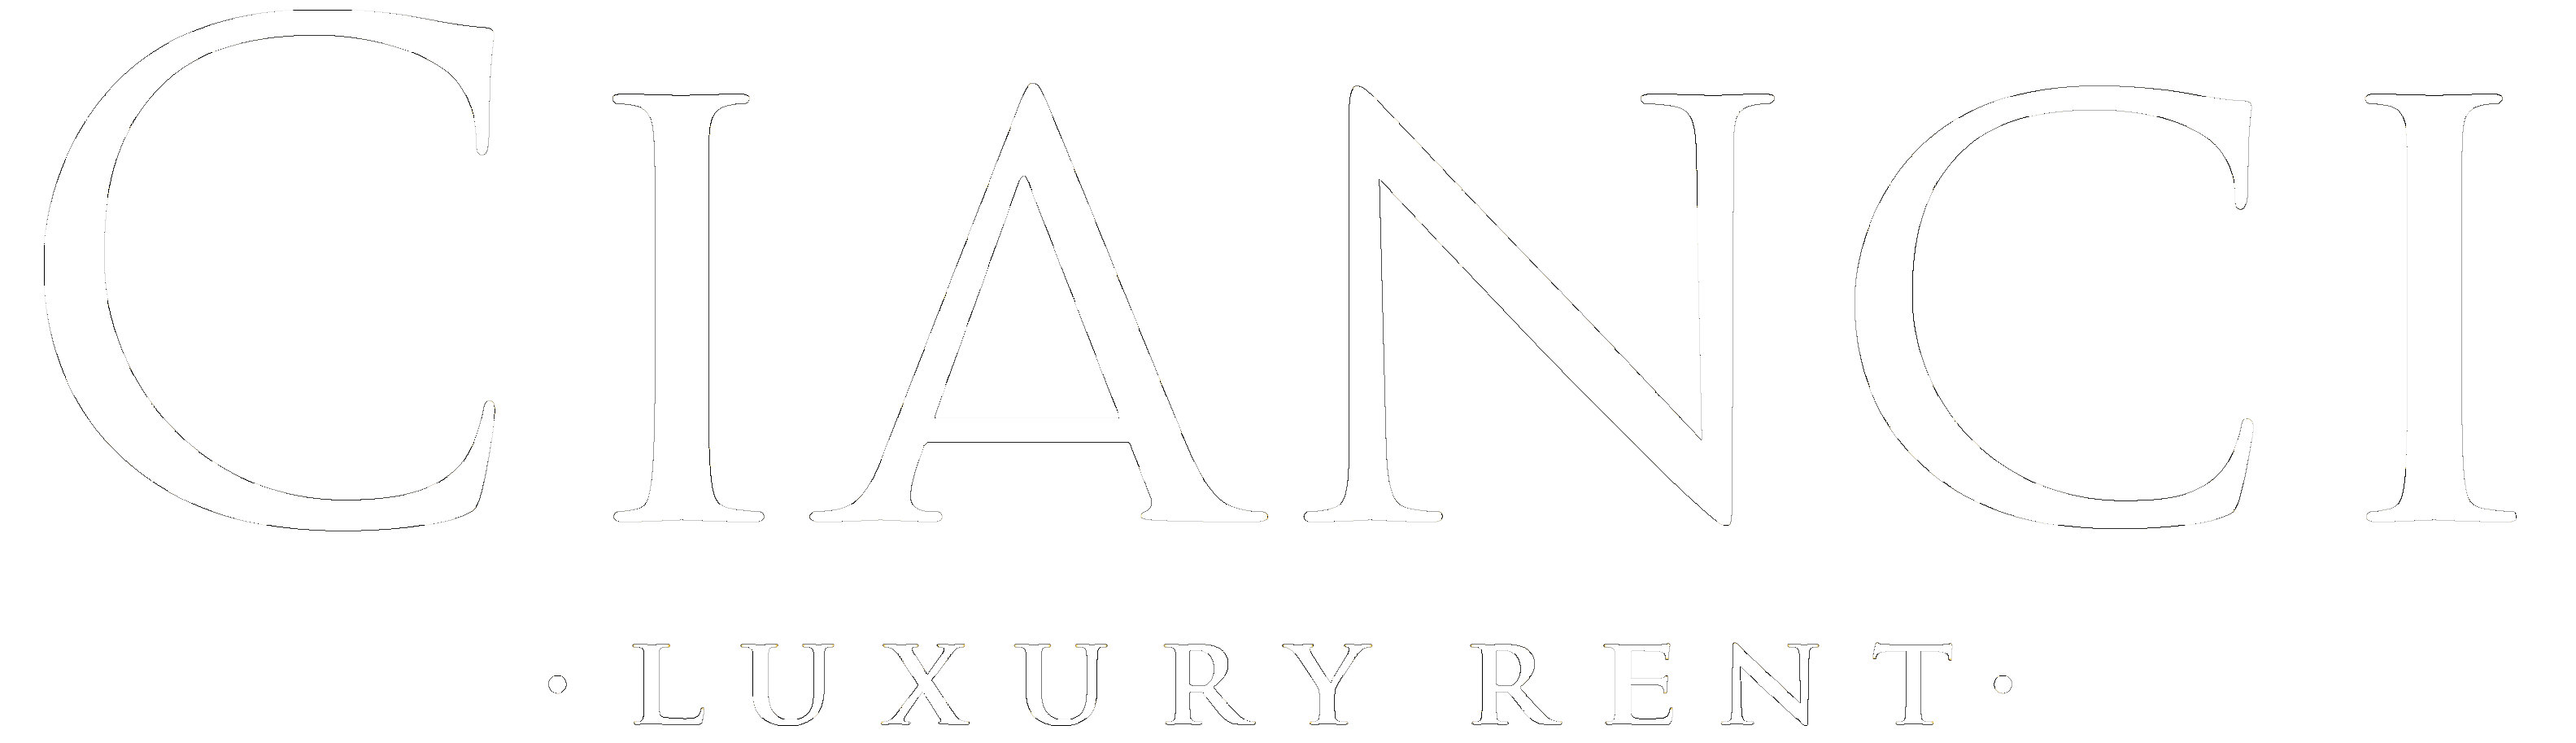 Cianci Luxury Rent